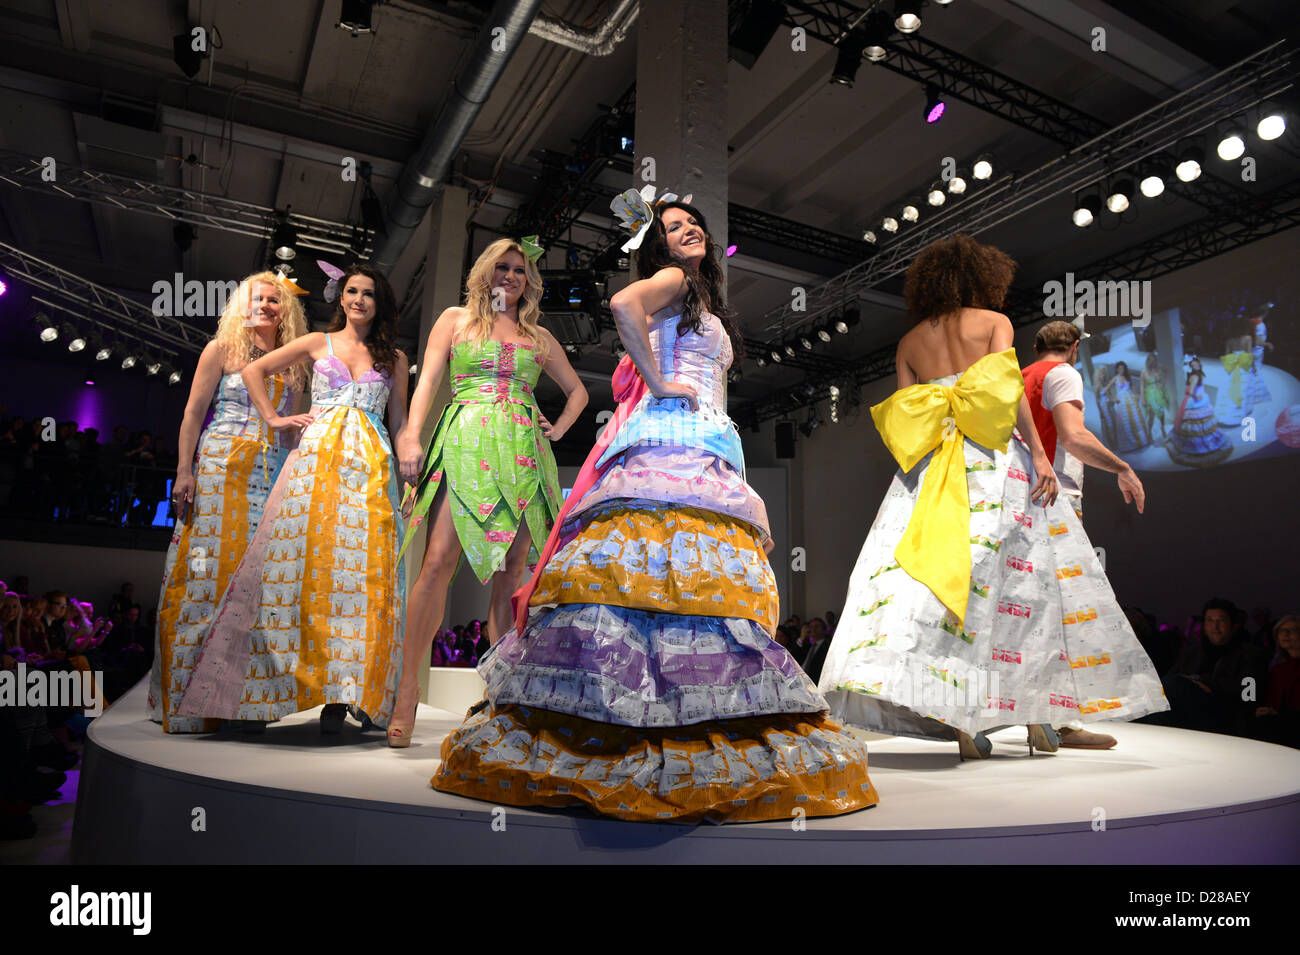 (L-R) Klara Ahlers (Lavera), Mariella Ahrens, Magdalena Brzeska, Christine Neubauer, Annabelle Mandeng and Bernhard Bettermann present creations at the Green Brand Lavera opening from designer Katell Gelebart during the Fashion Week in Berlin, Germany, 16 January 2013. The presentations of the autumn/winter 2013/2014 collections take place from 15 to 18 January 2013. Photo: Jens Kalaene/dpa  +++(c) dpa - Bildfunk+++ Stock Photo